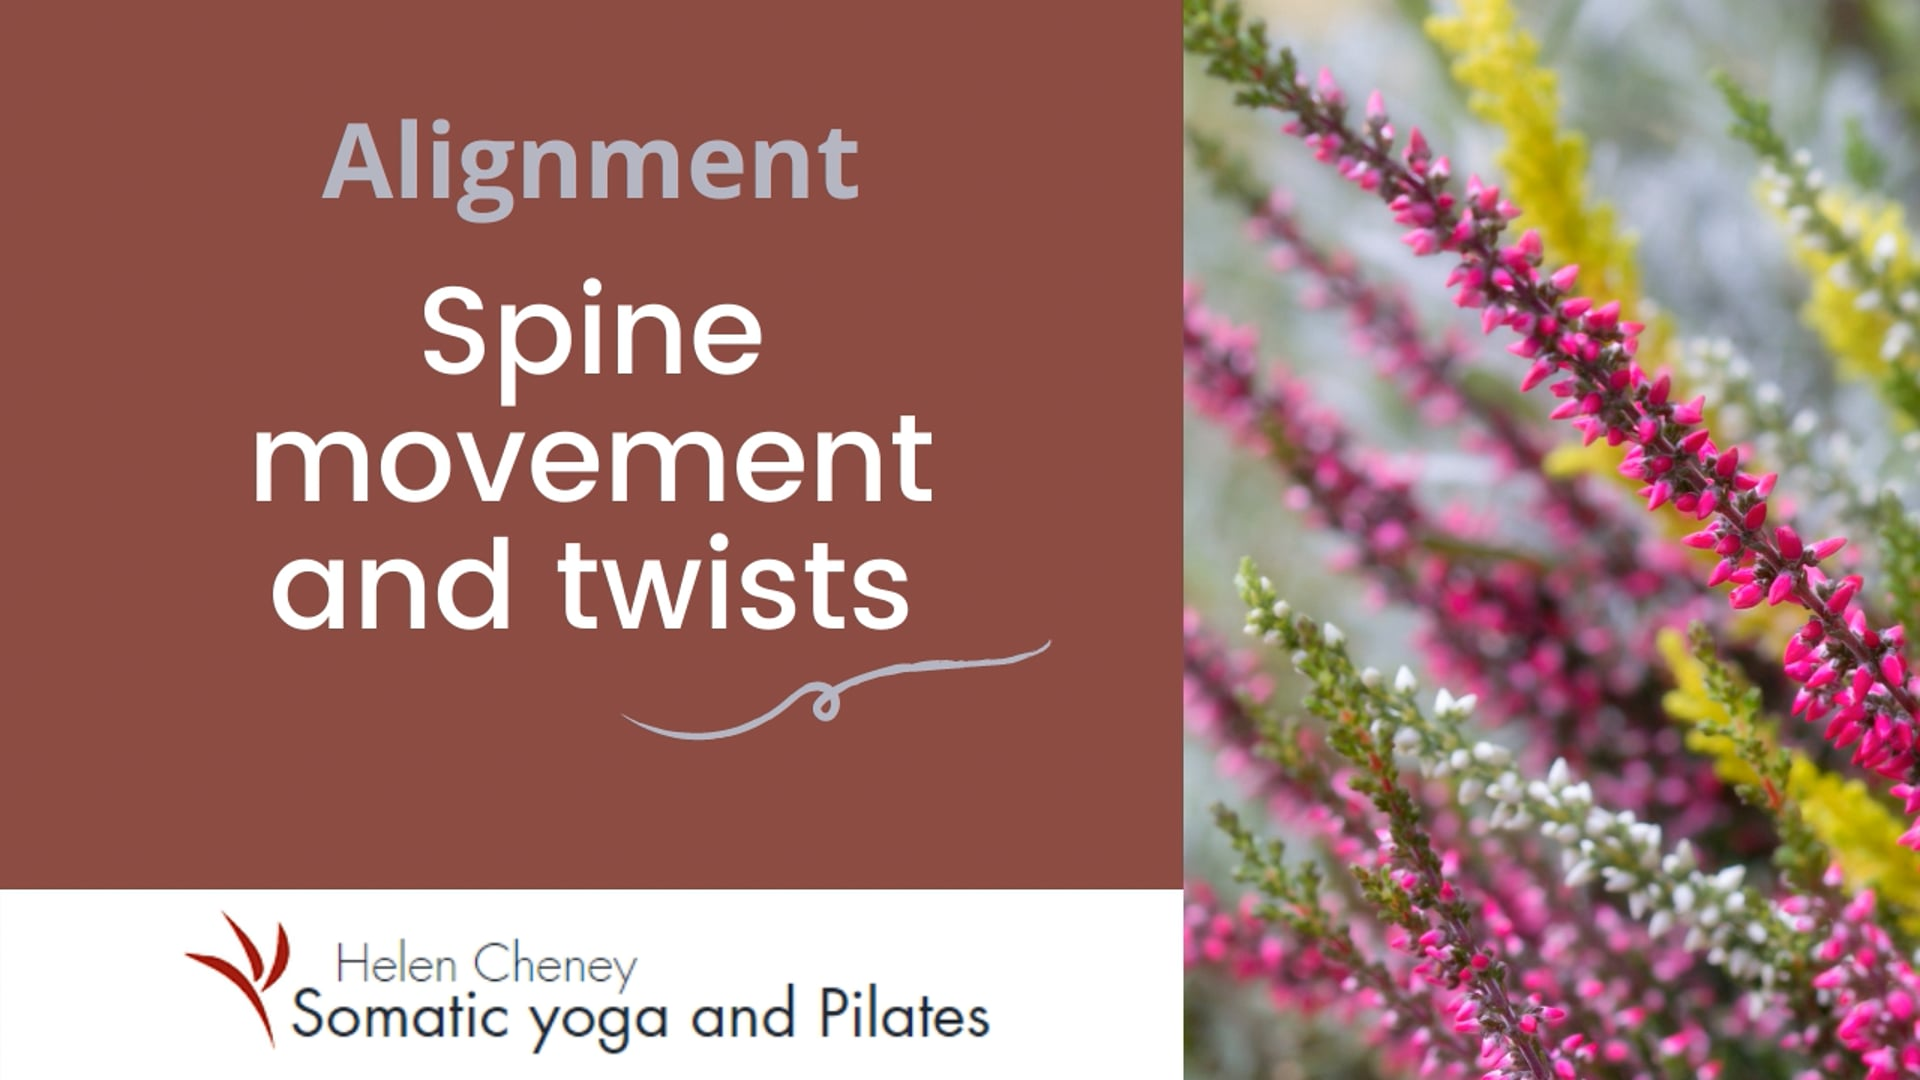 Spine movement and twists